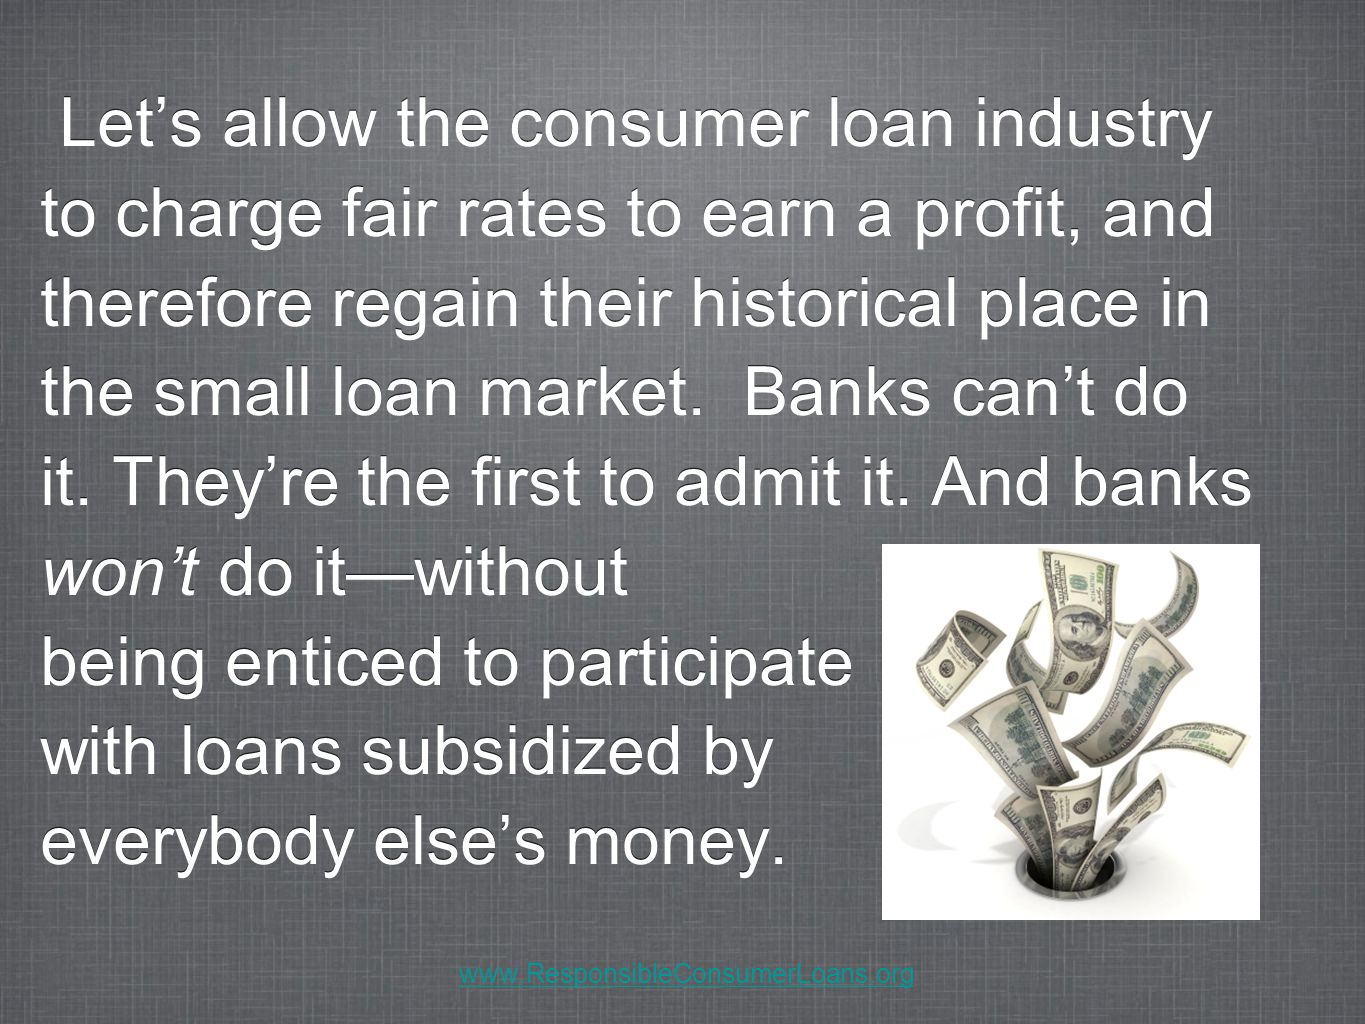 Let's allow the consumer loan industry to charge fair rates to earn a profit, and therefore regain their historical place in the small loan market. Ba